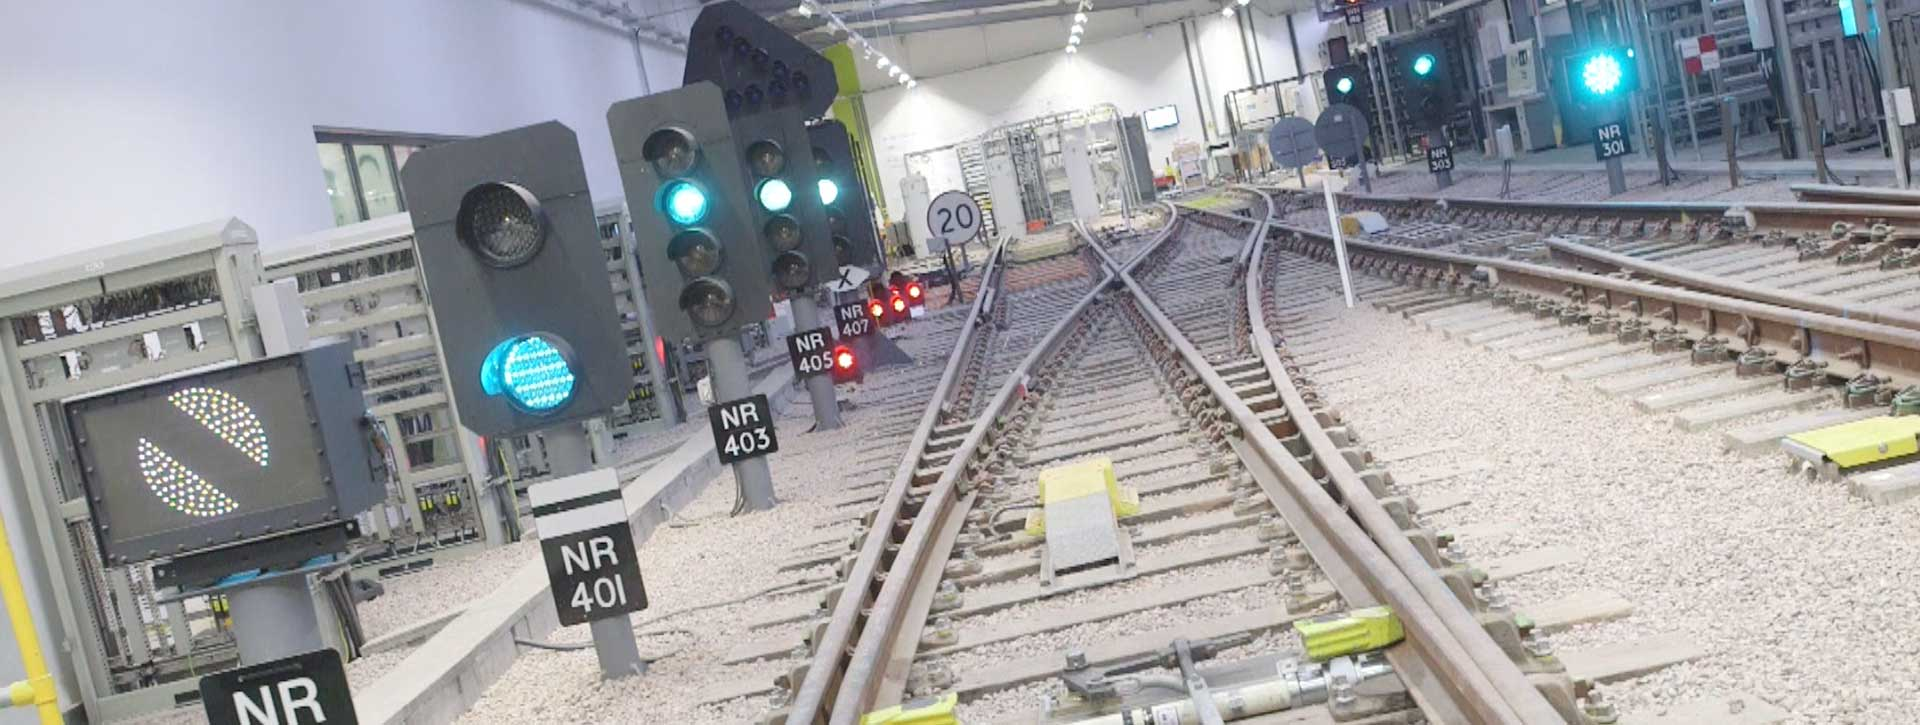 360 degree photograpphy of indoor rail track